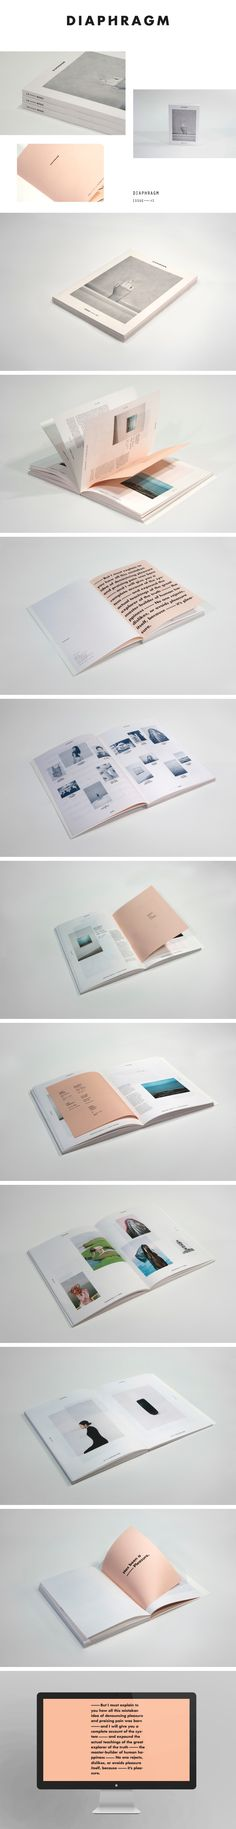 LAYOUT | simple, grid, elegant, colour, text, image, gallery, balance